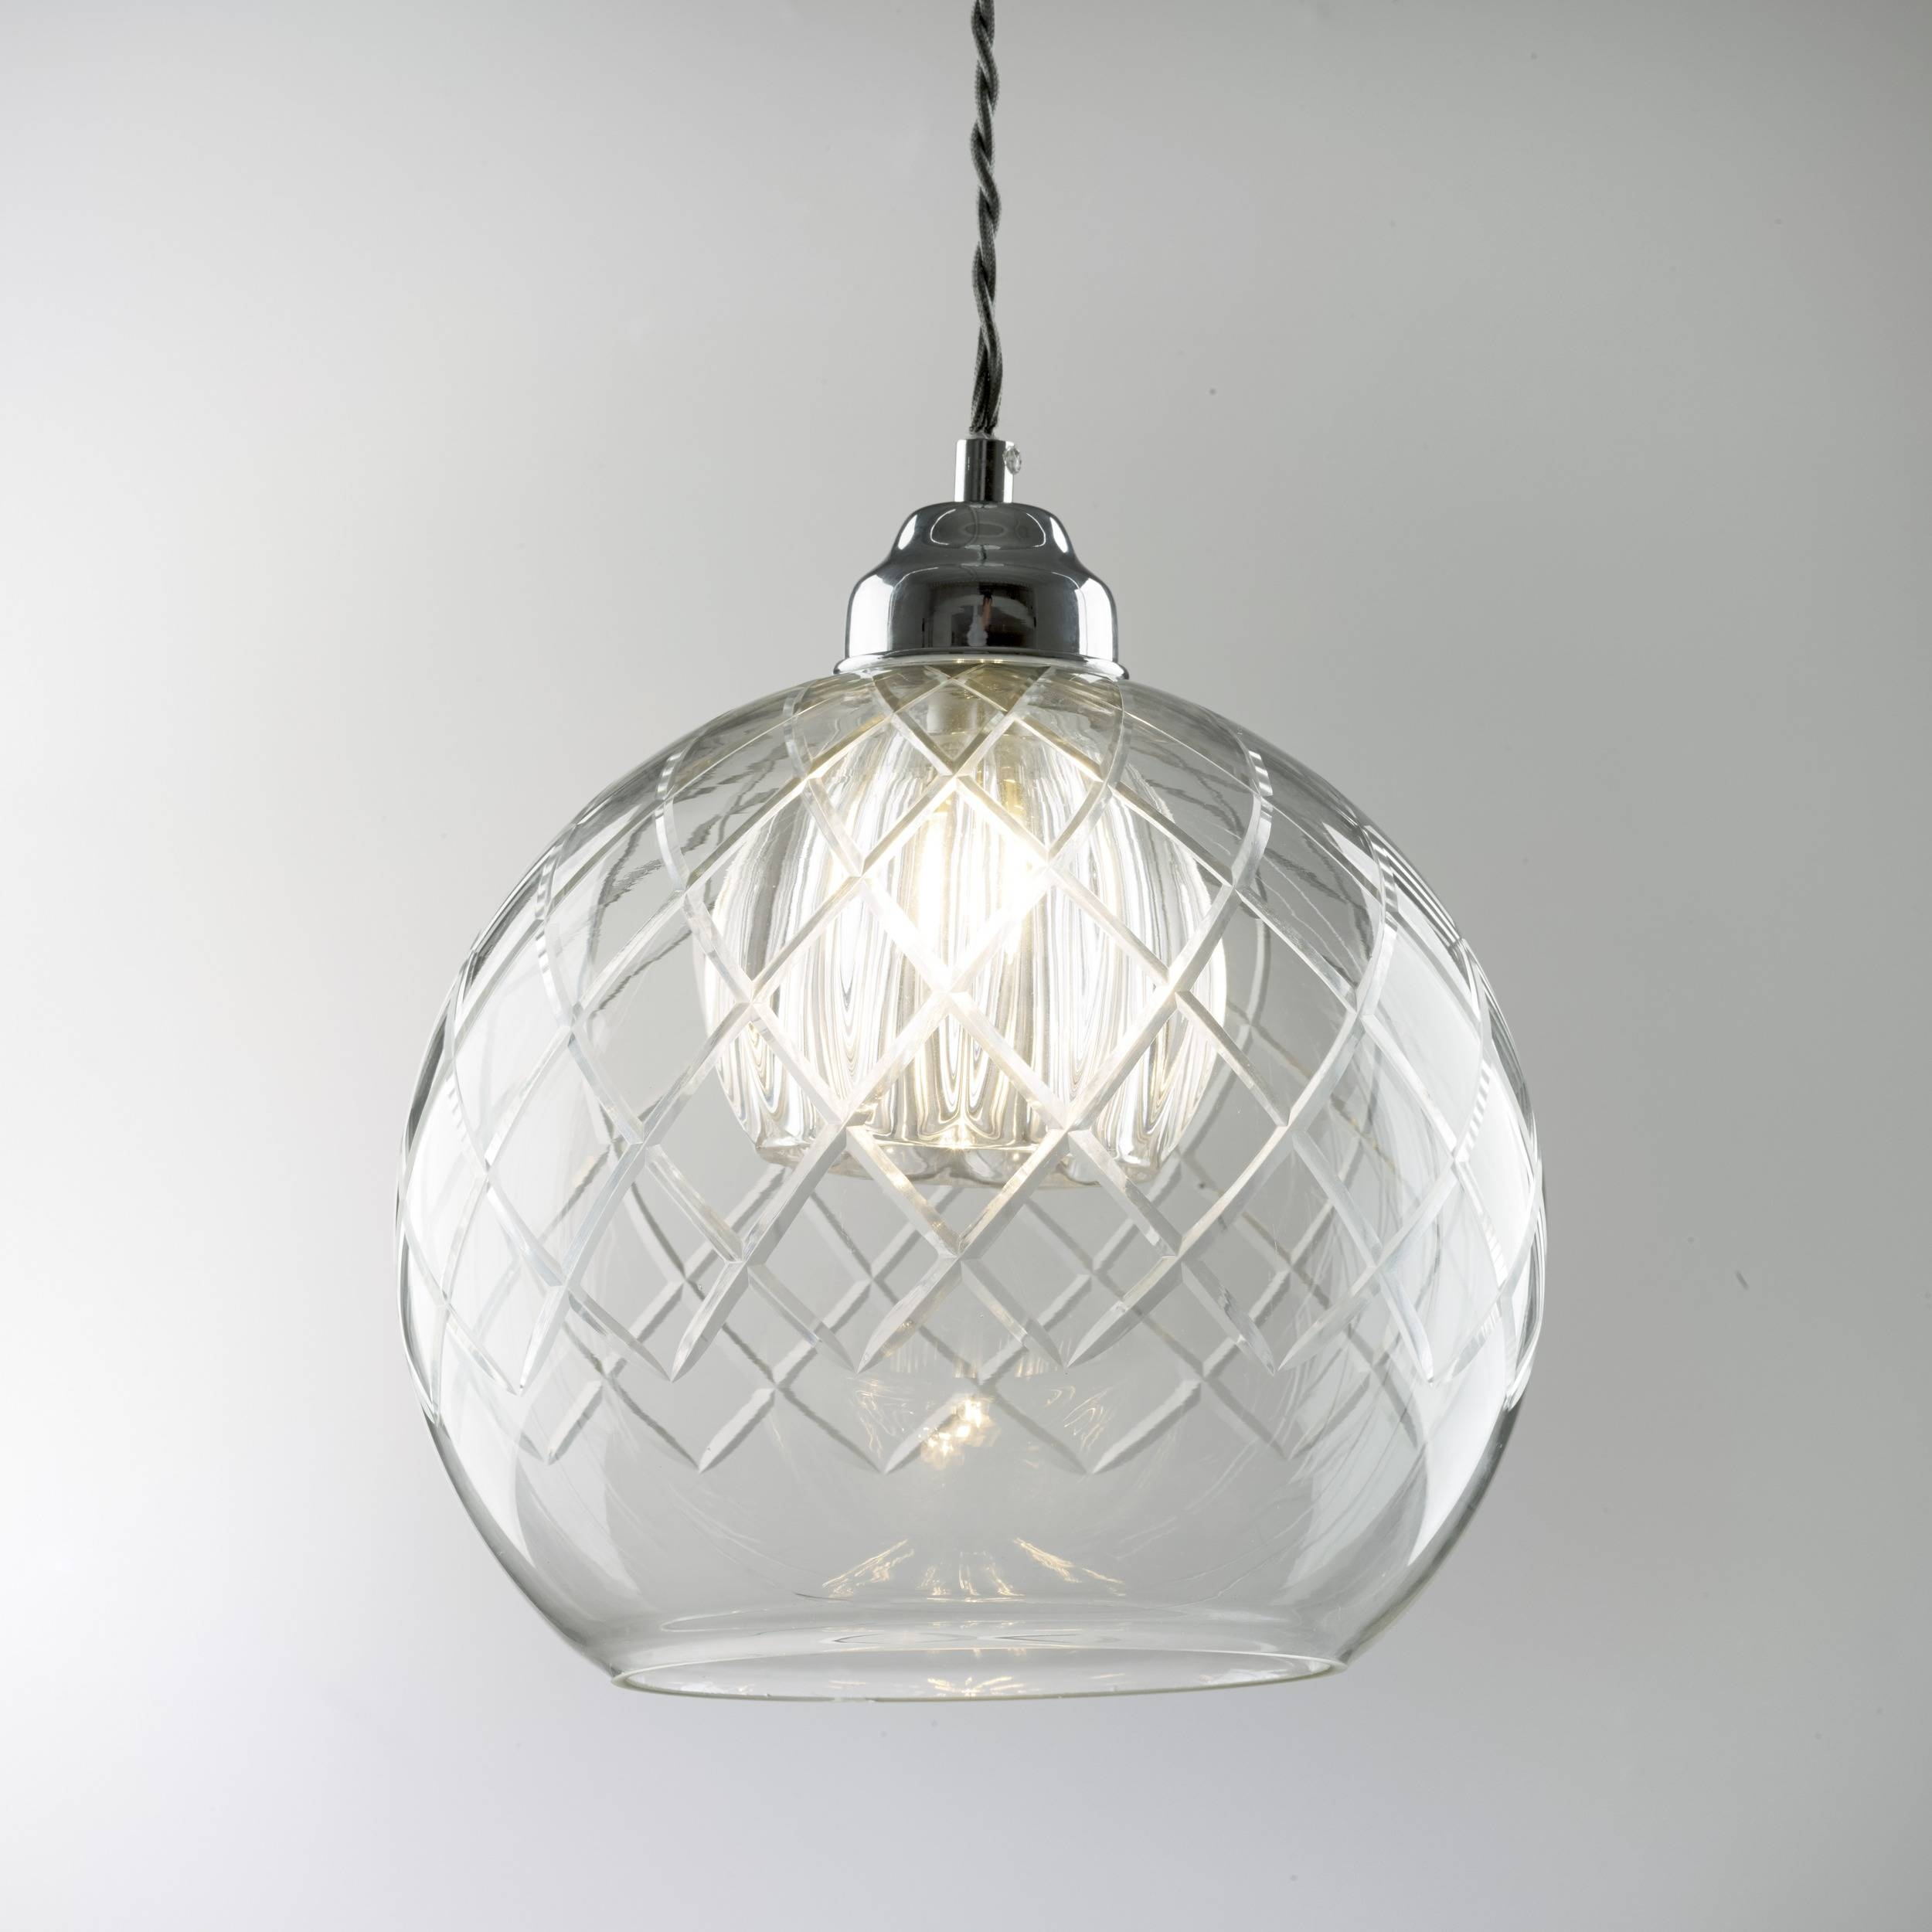 Great Glass Pendant Lighting 16 About Remodel Mercury Glass within Mercury Glass Lights Fixtures (Image 7 of 15)